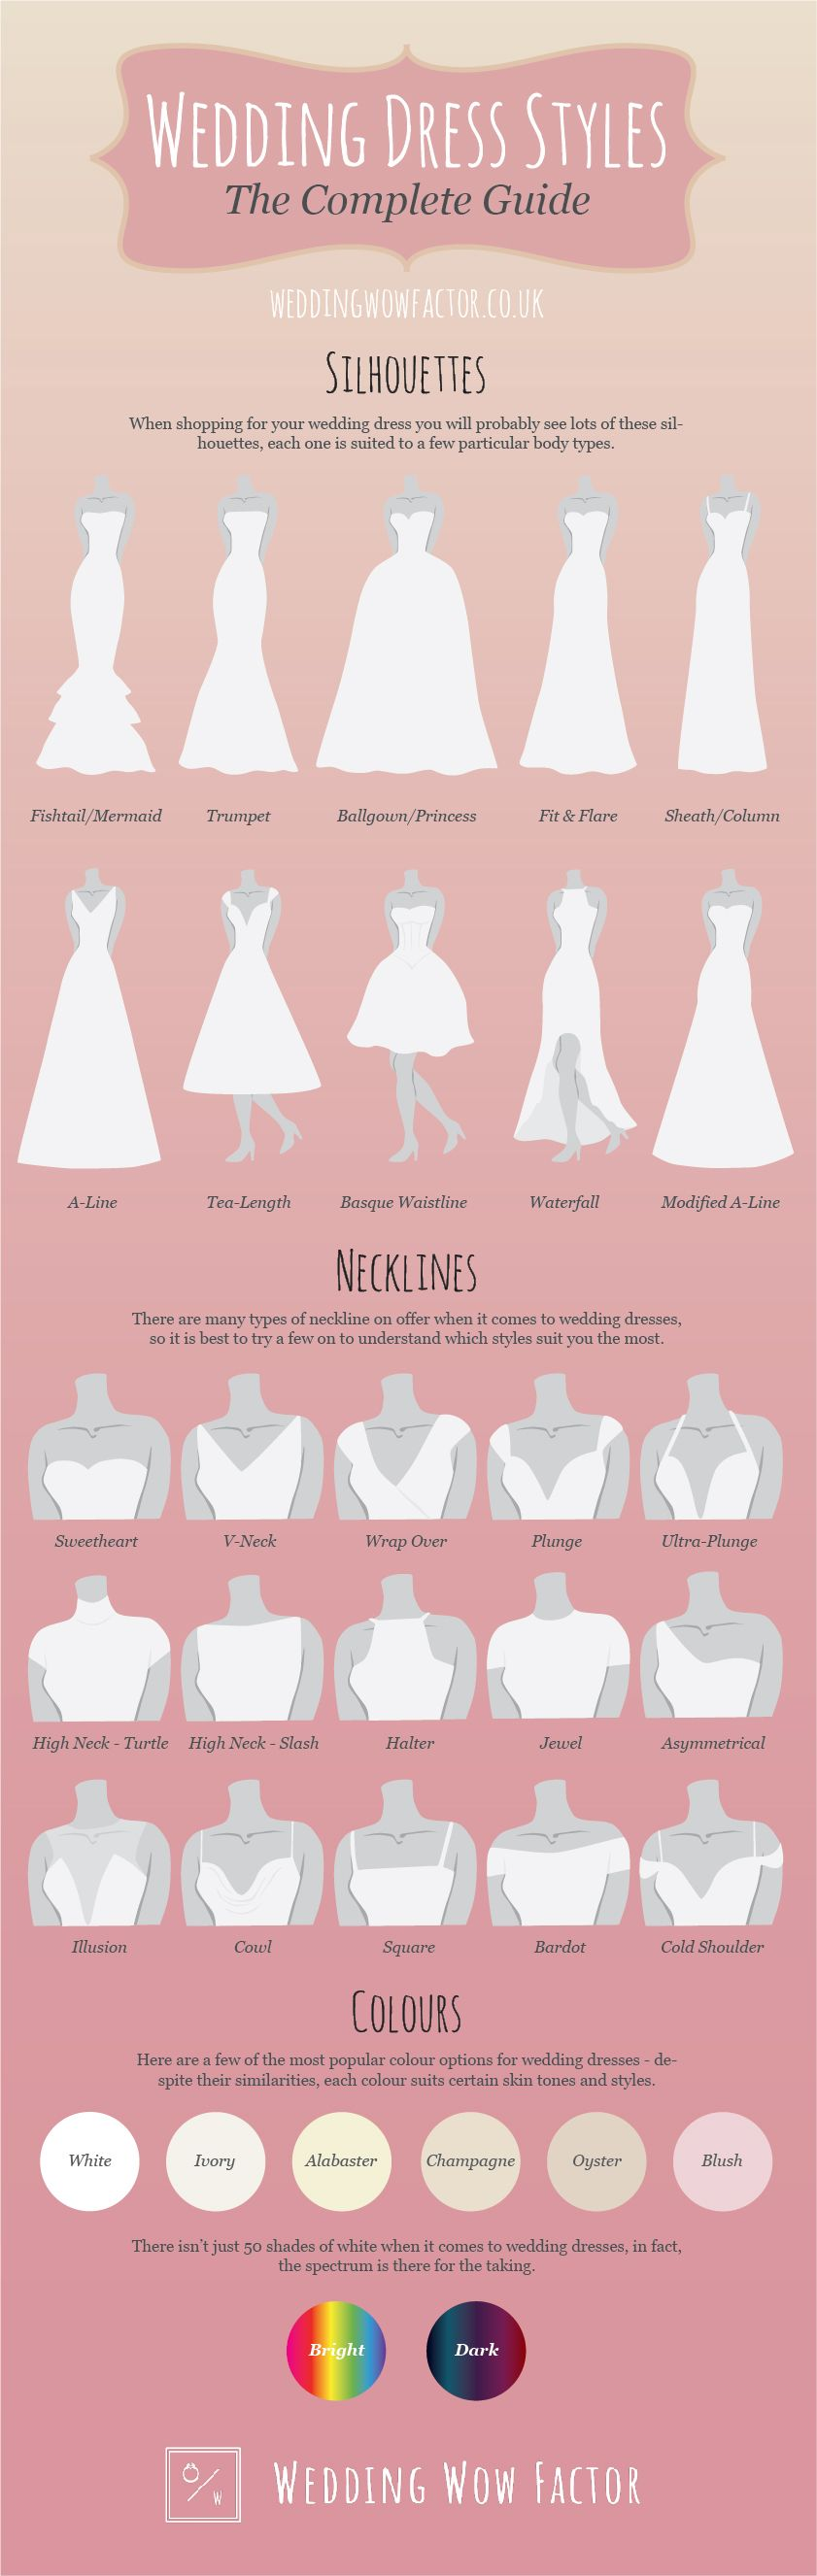 Wedding dress silhouettes and necklines infographic